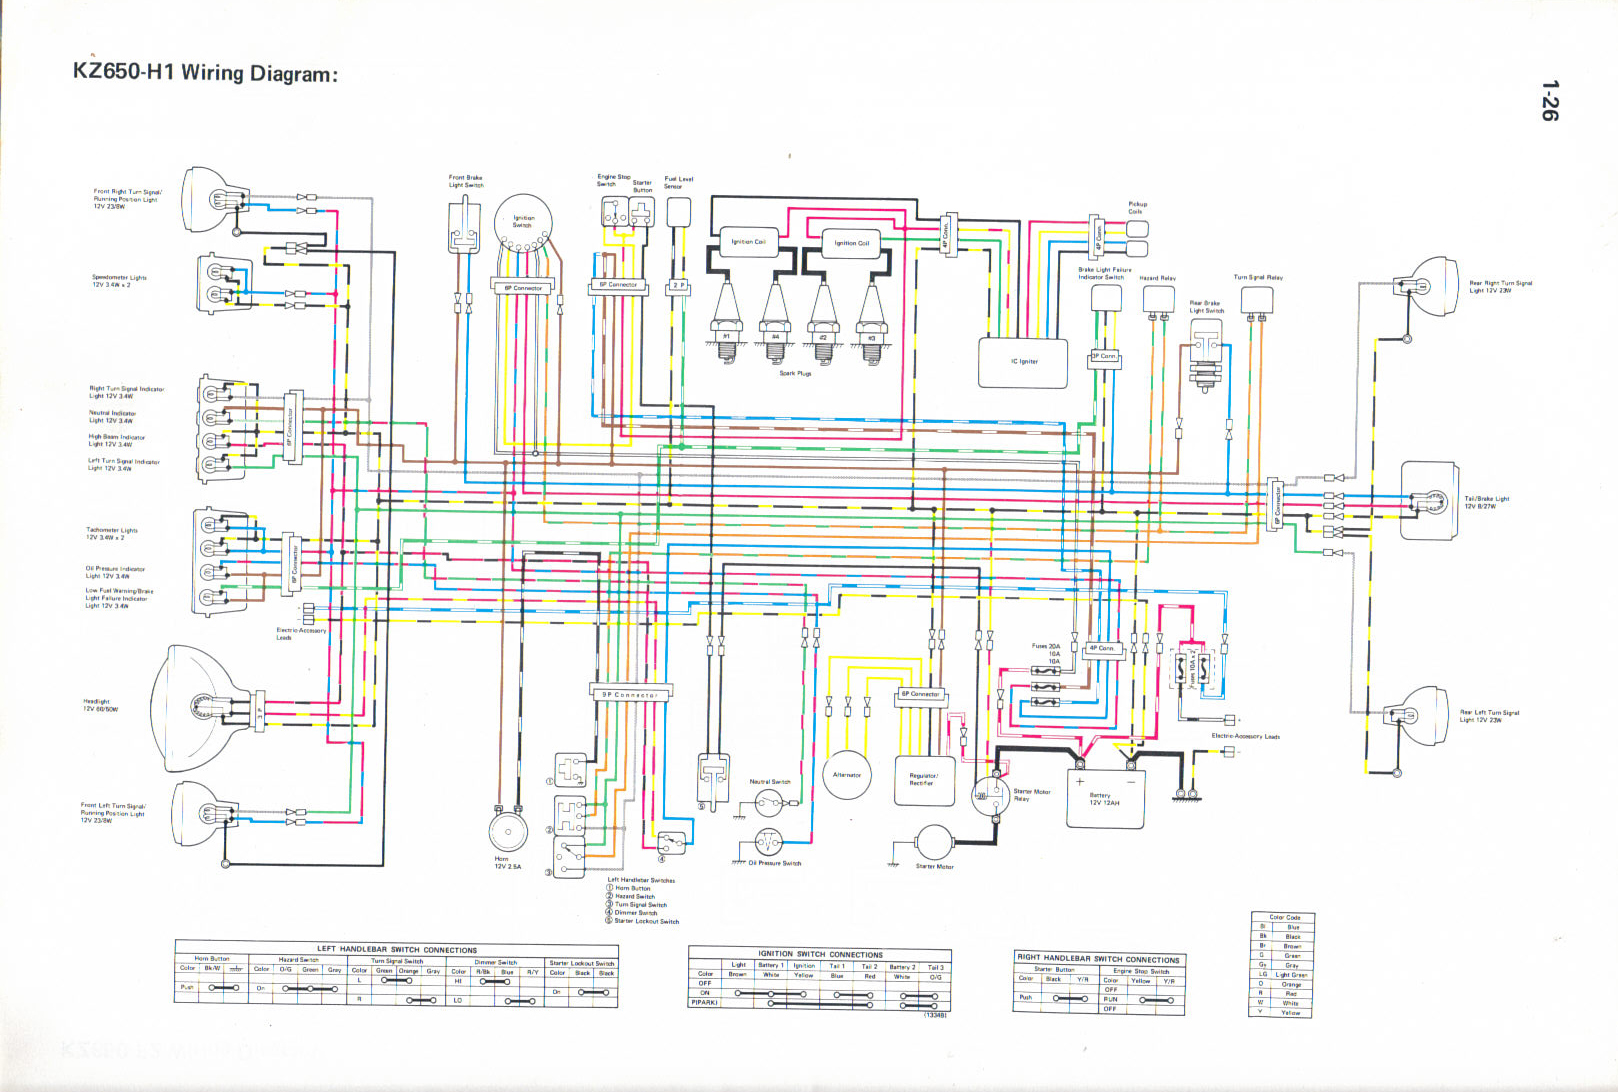 KZ650 H1 kawasaki h1 wiring diagram kawasaki wiring diagrams instruction ex500 wiring diagram at webbmarketing.co